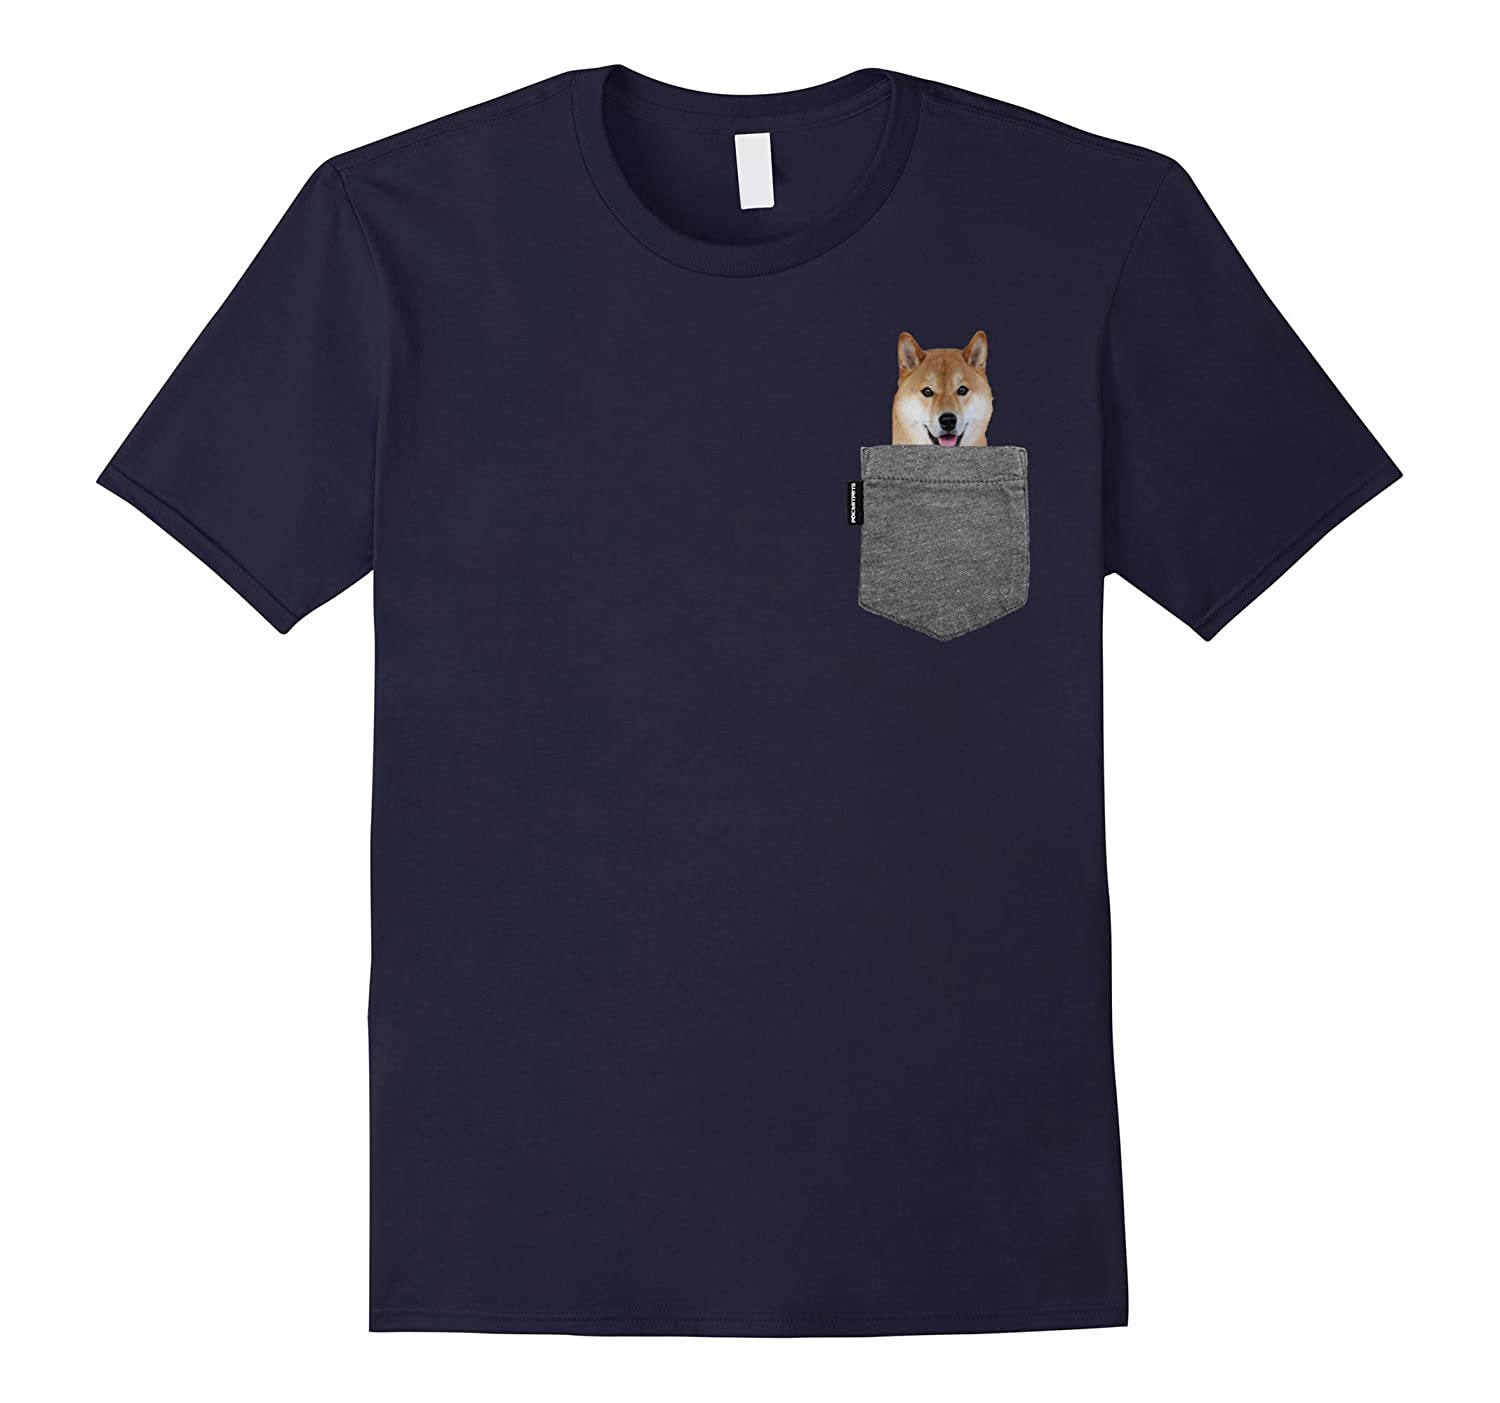 Außergewöhnlich Dog in Your Pocket Tshirt Shiba Inu Shirt Doge Tee-RT – Rateeshirt #WB_72